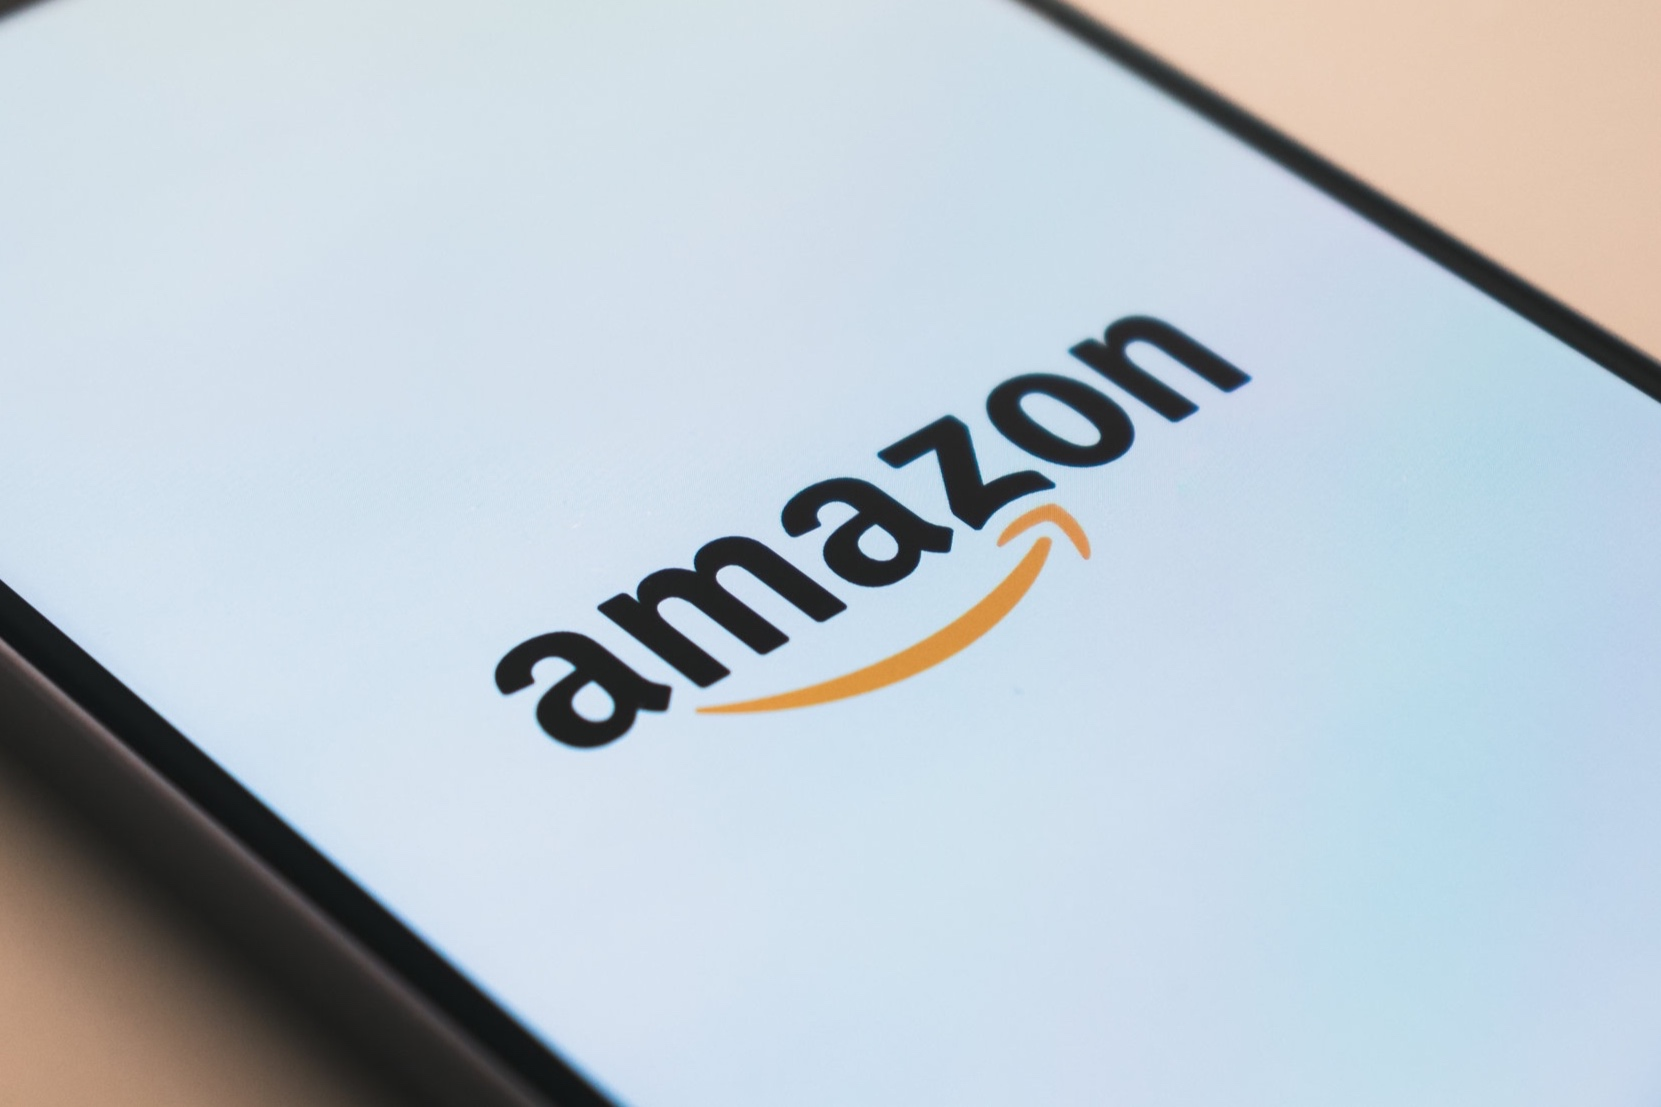 Amazon Seller Consultants - Over 50% of US consumer e-commerce shopping occurs on Amazon. We specialize in generating sales and building your brand on Amazon.